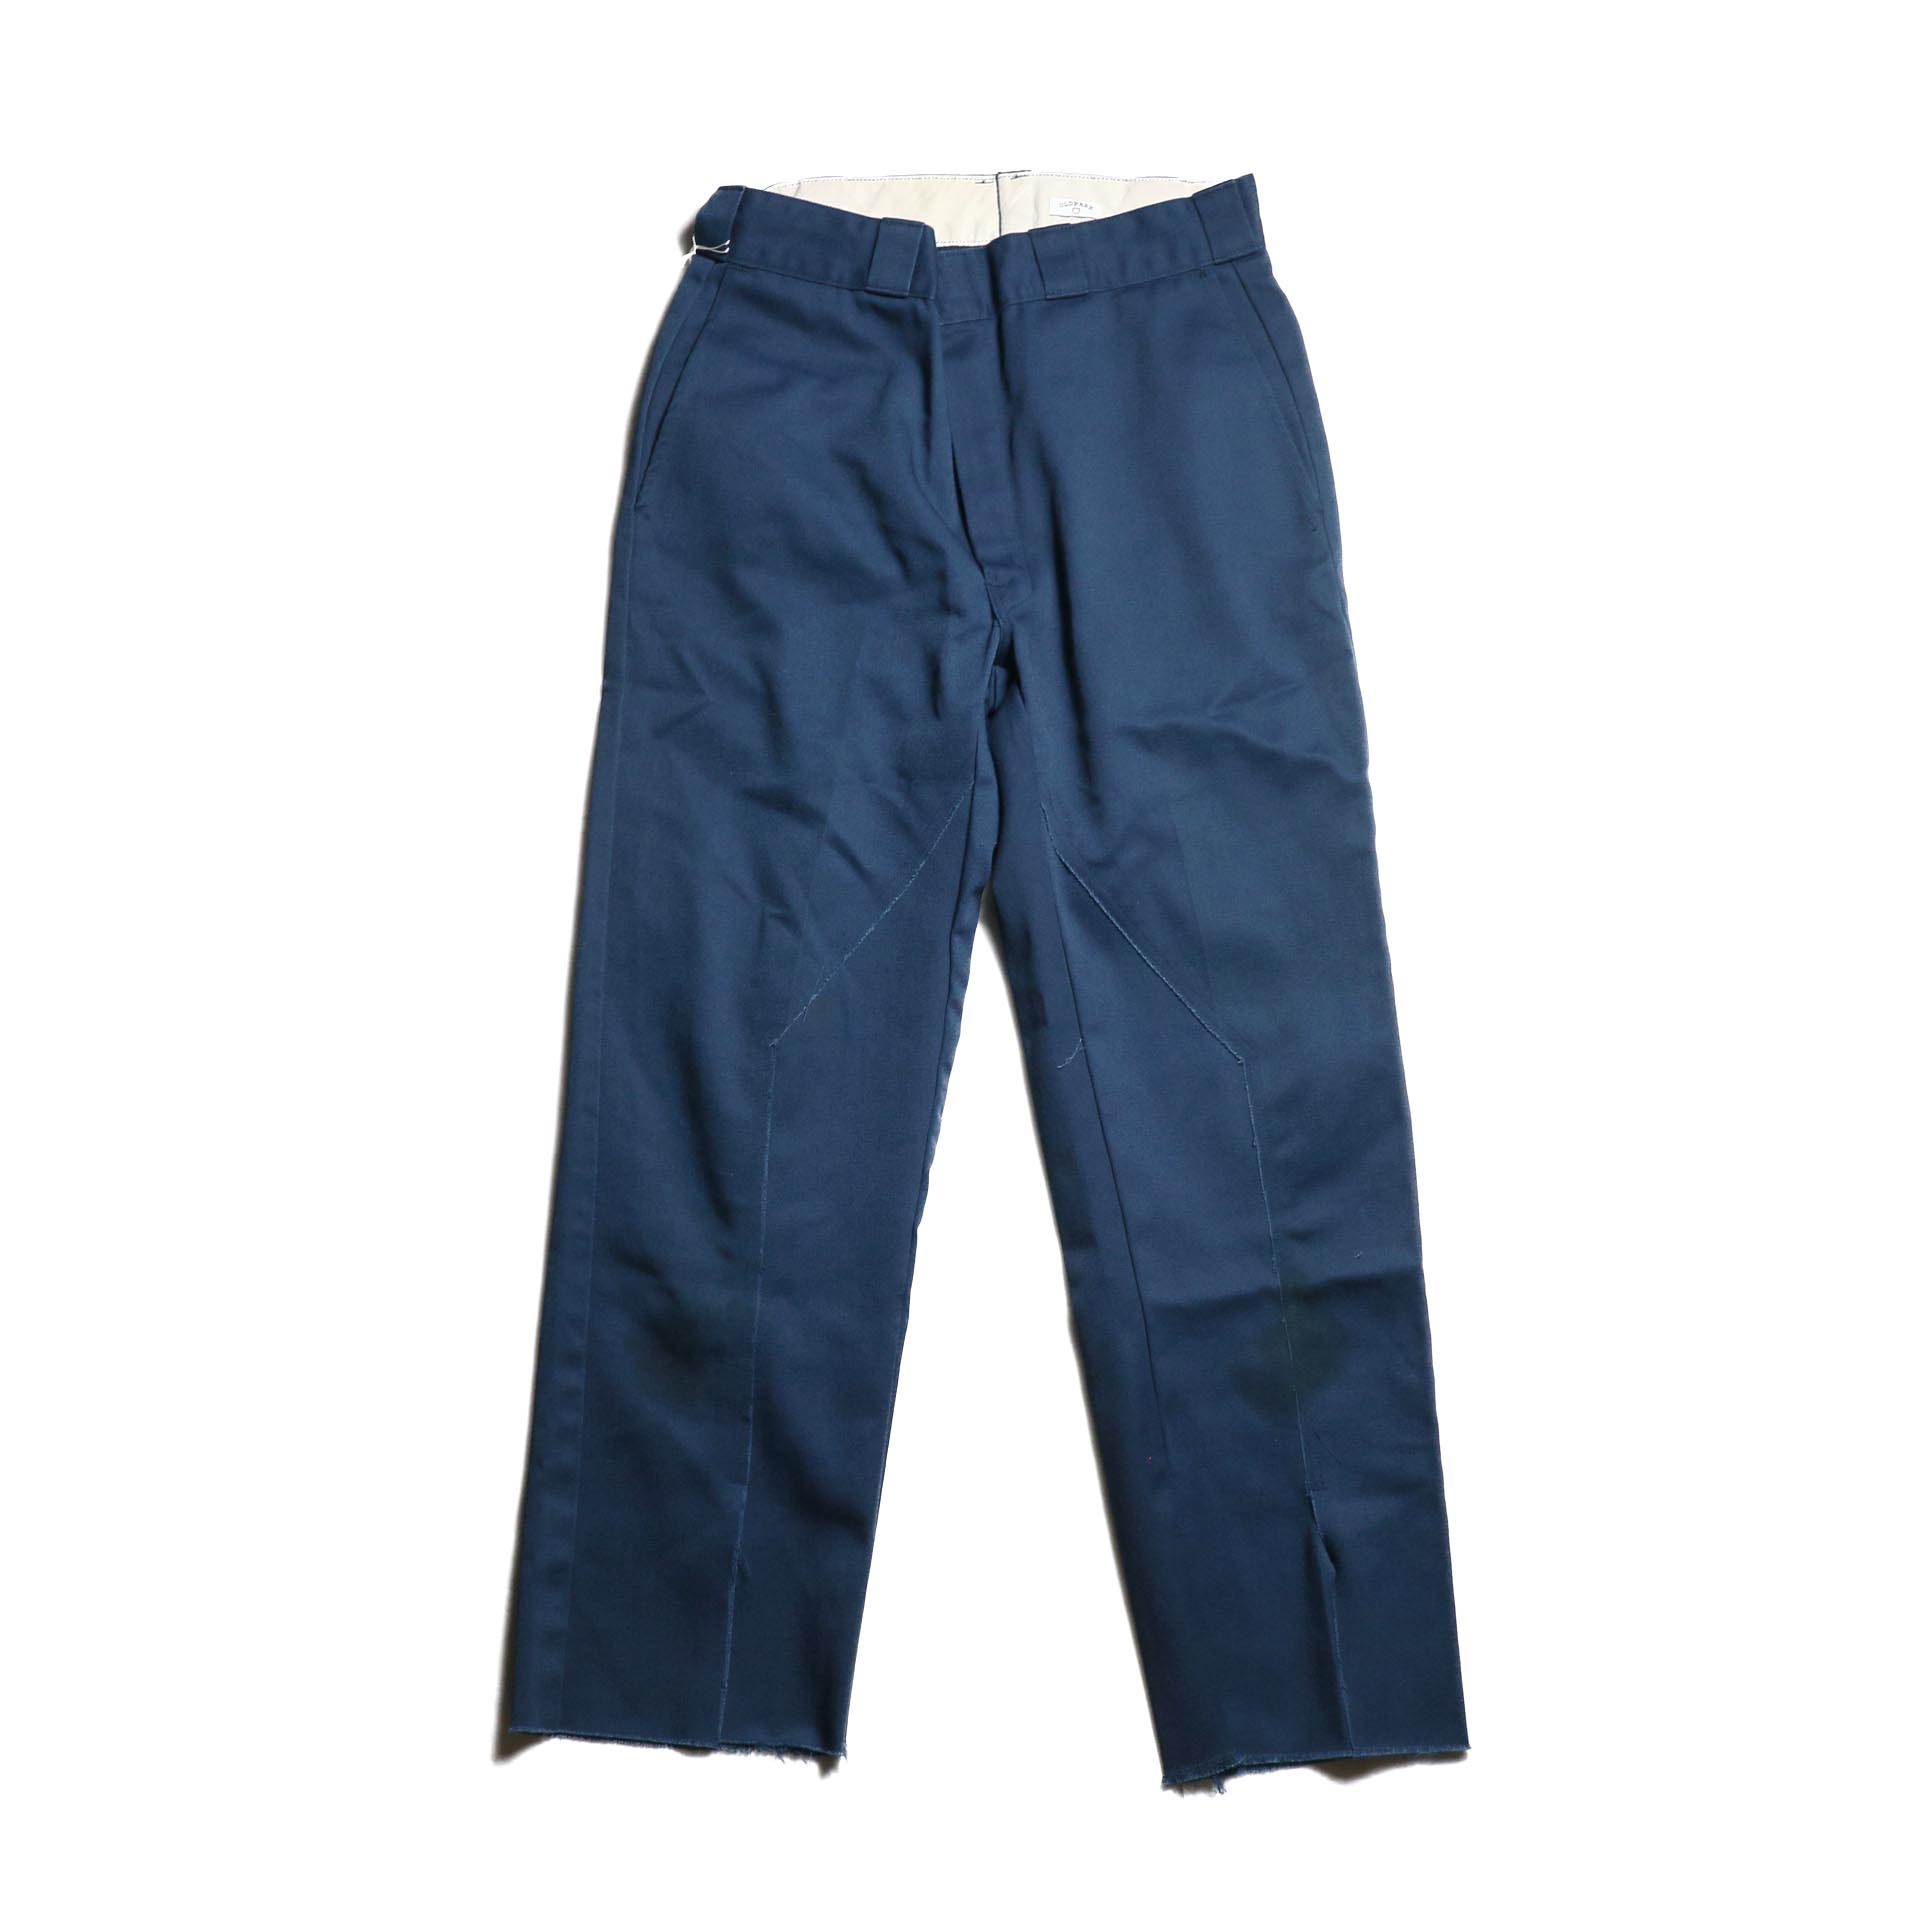 "OLD PARK / Slit Pants ""Dickies"" -Navy (Msize)"